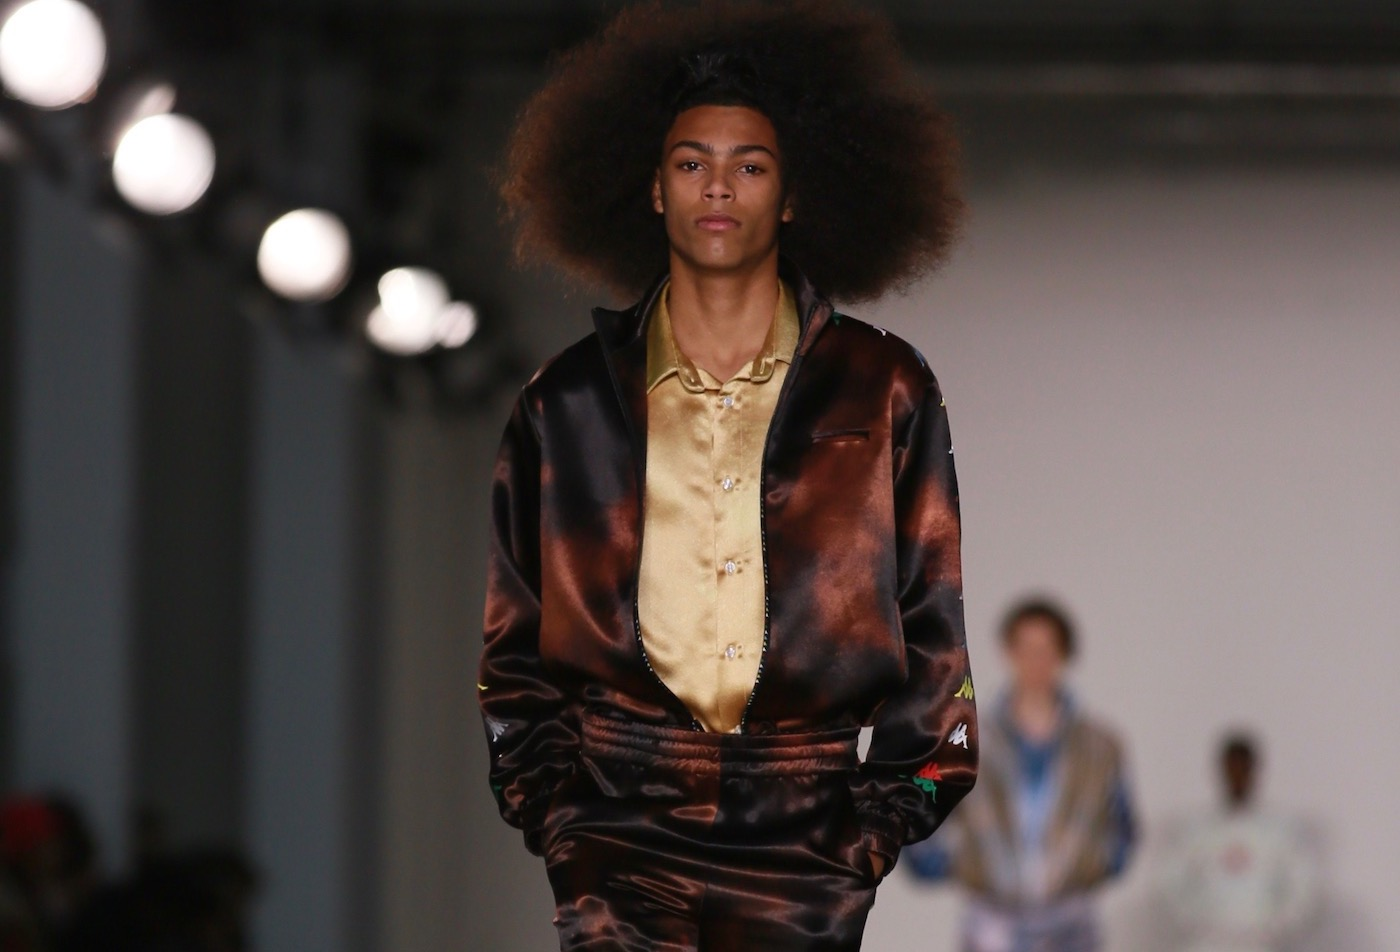 LFWM: 8ON8 PRESENTED BY GQ CHINA Autumn/Winter 2020 Collection